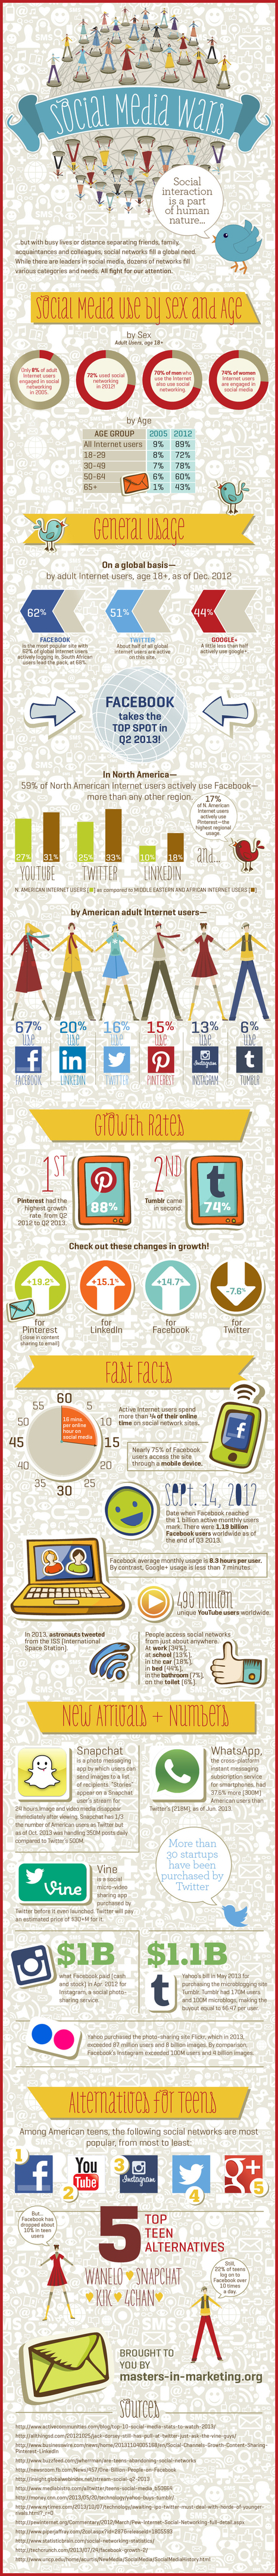 The Social Media Wars [INFOGRAPHIC] | 21st Century Learning | Scoop.it